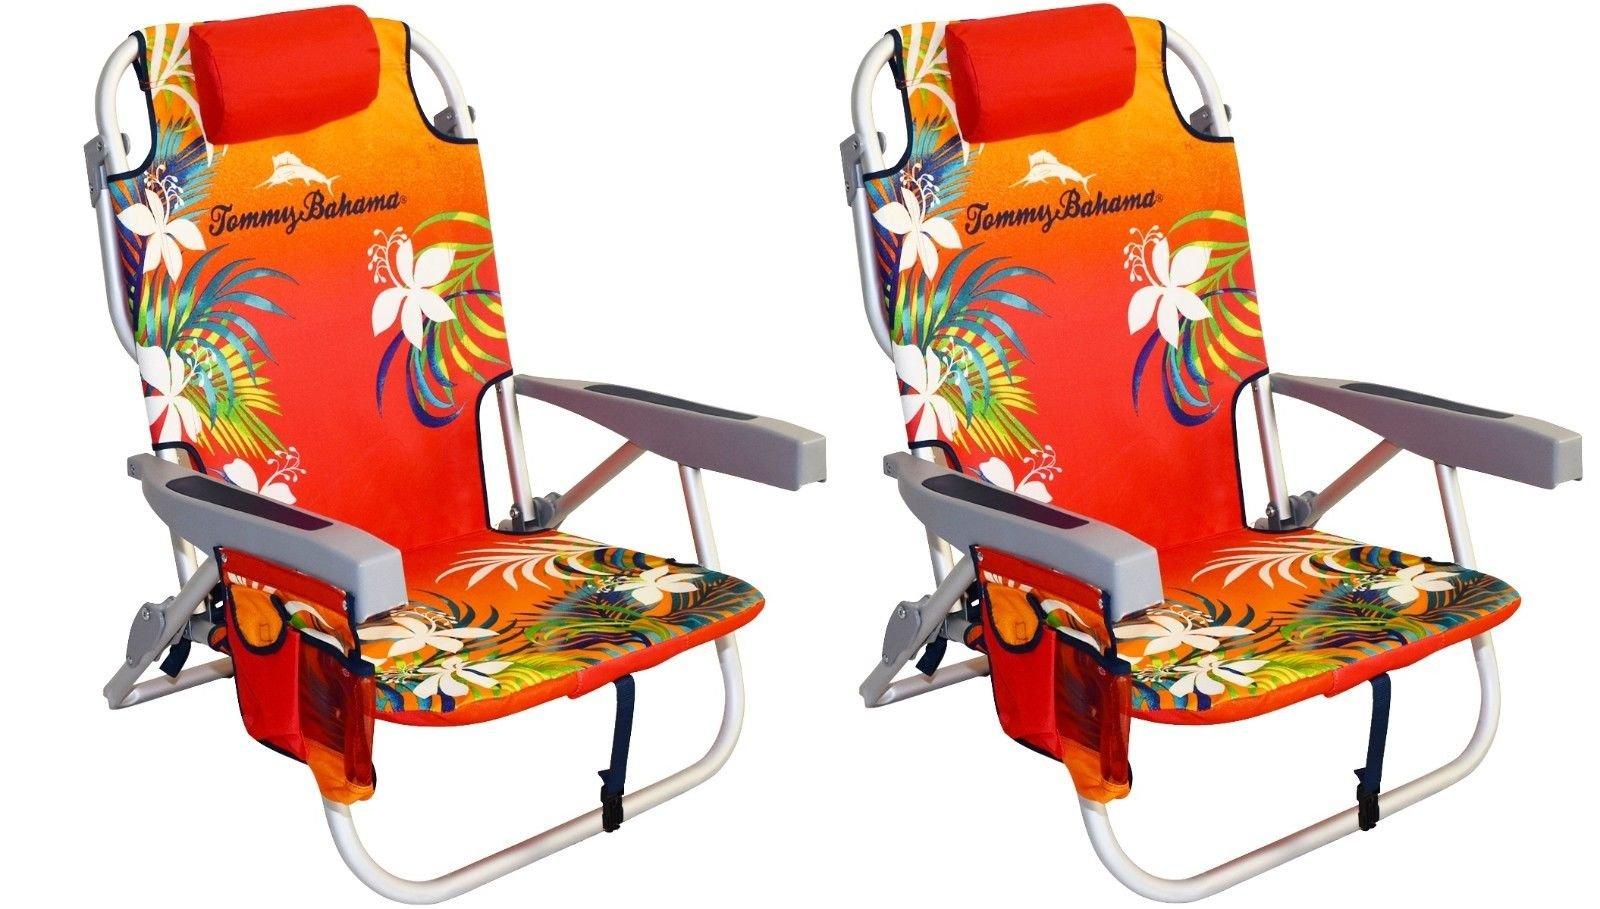 2 Tommy Bahama 2016 Backpack Cooler Chair with Storage Pouch and Towel Bar (Orange/Red & Orange/Red)